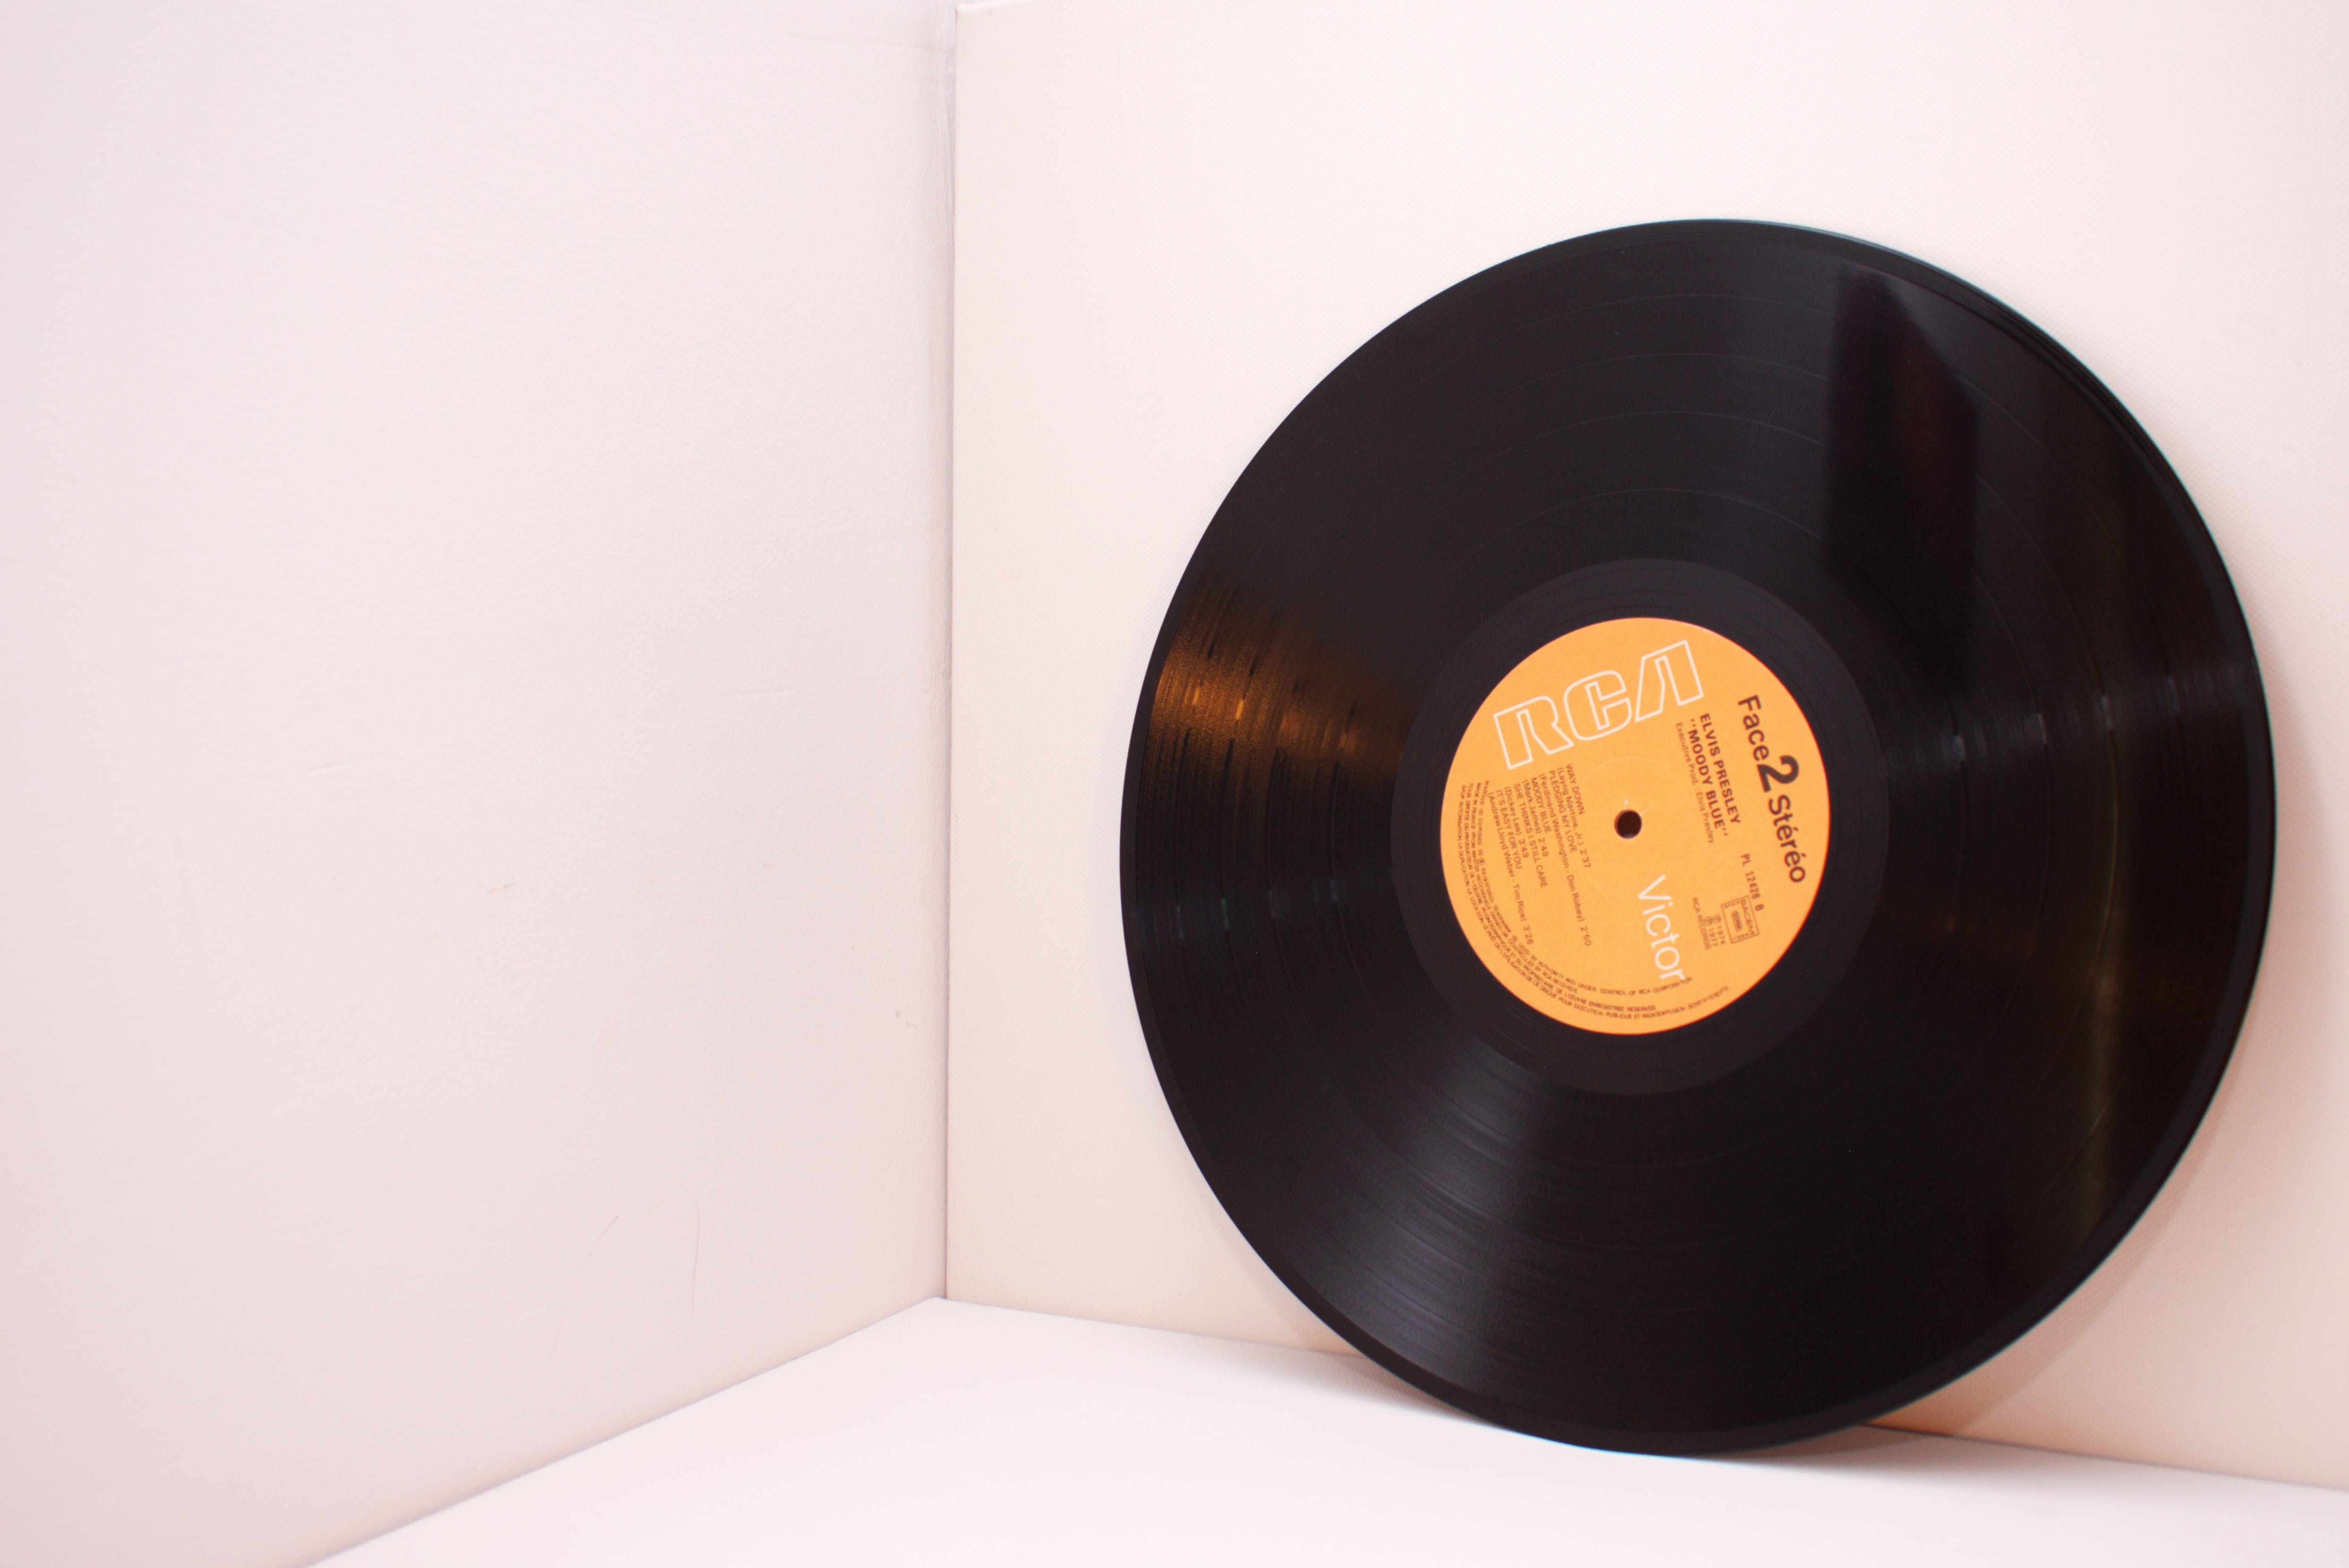 Closeup Photo of Rca Vinyl Record Disc